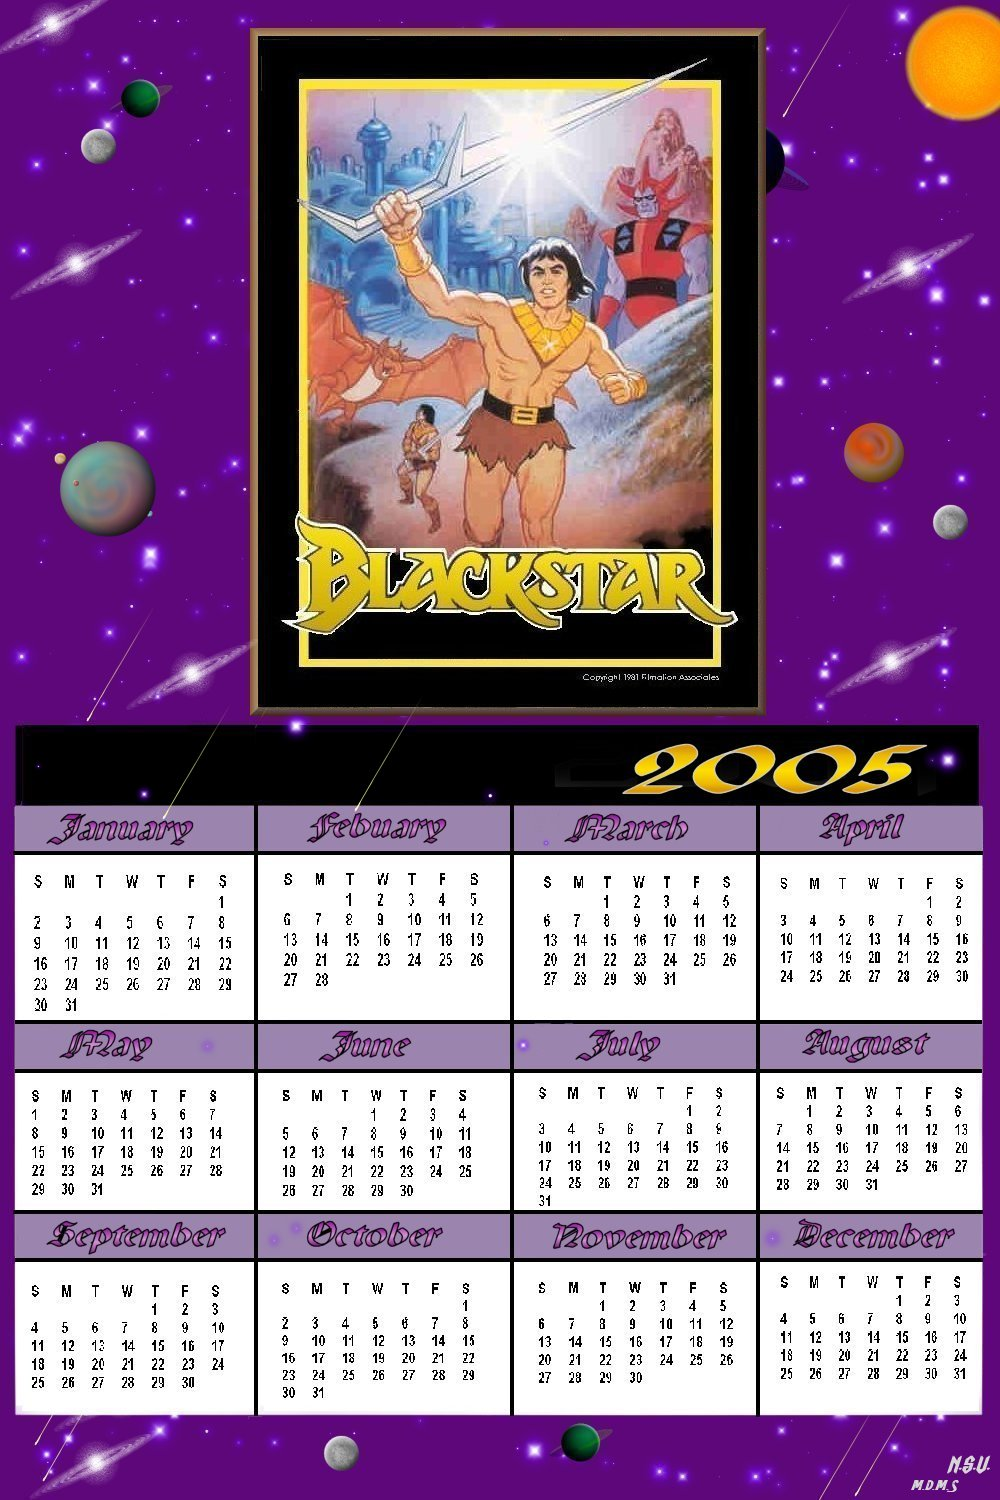 BlackstarCalender2005_SearchForTheStarsword.jpg